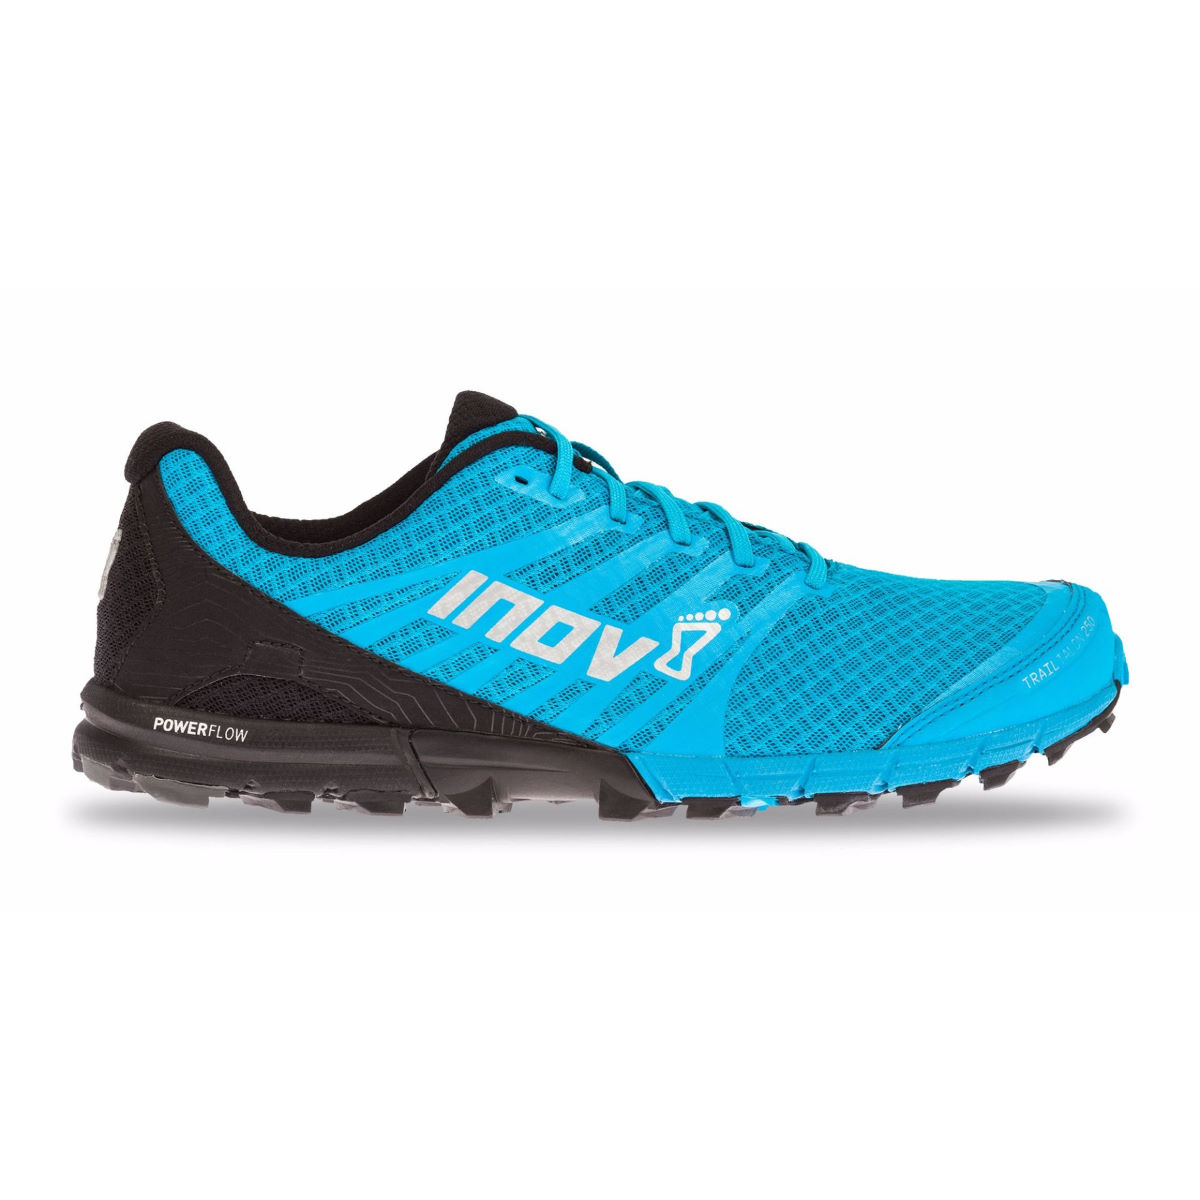 Chaussures Inov-8 Trail Talon 250 - UK 11 BLUE/BLACK